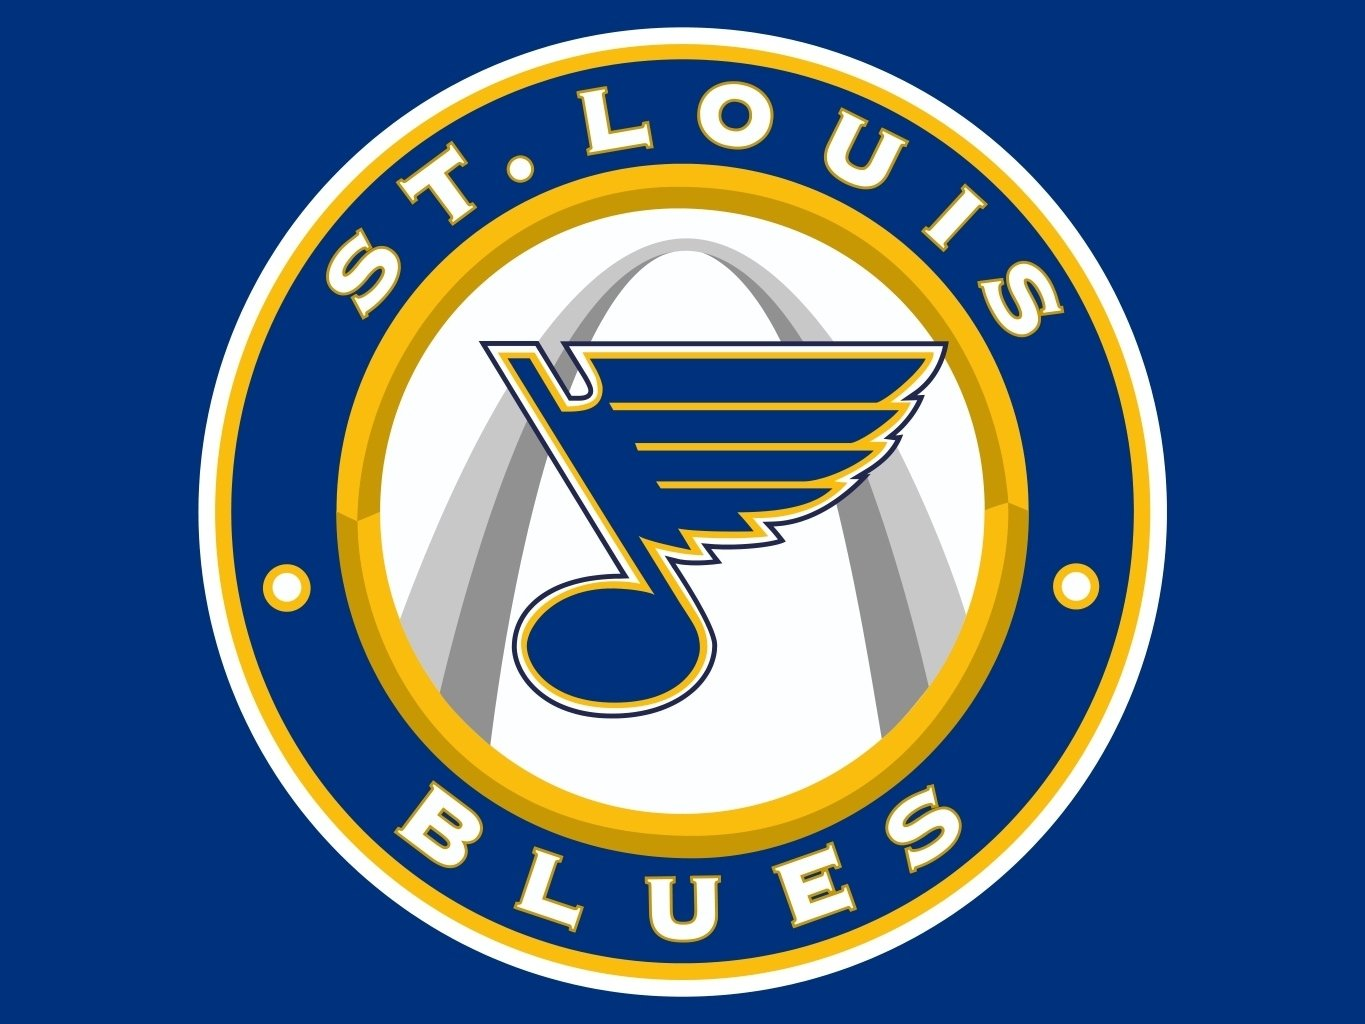 St. louis Blues Wallpaper and